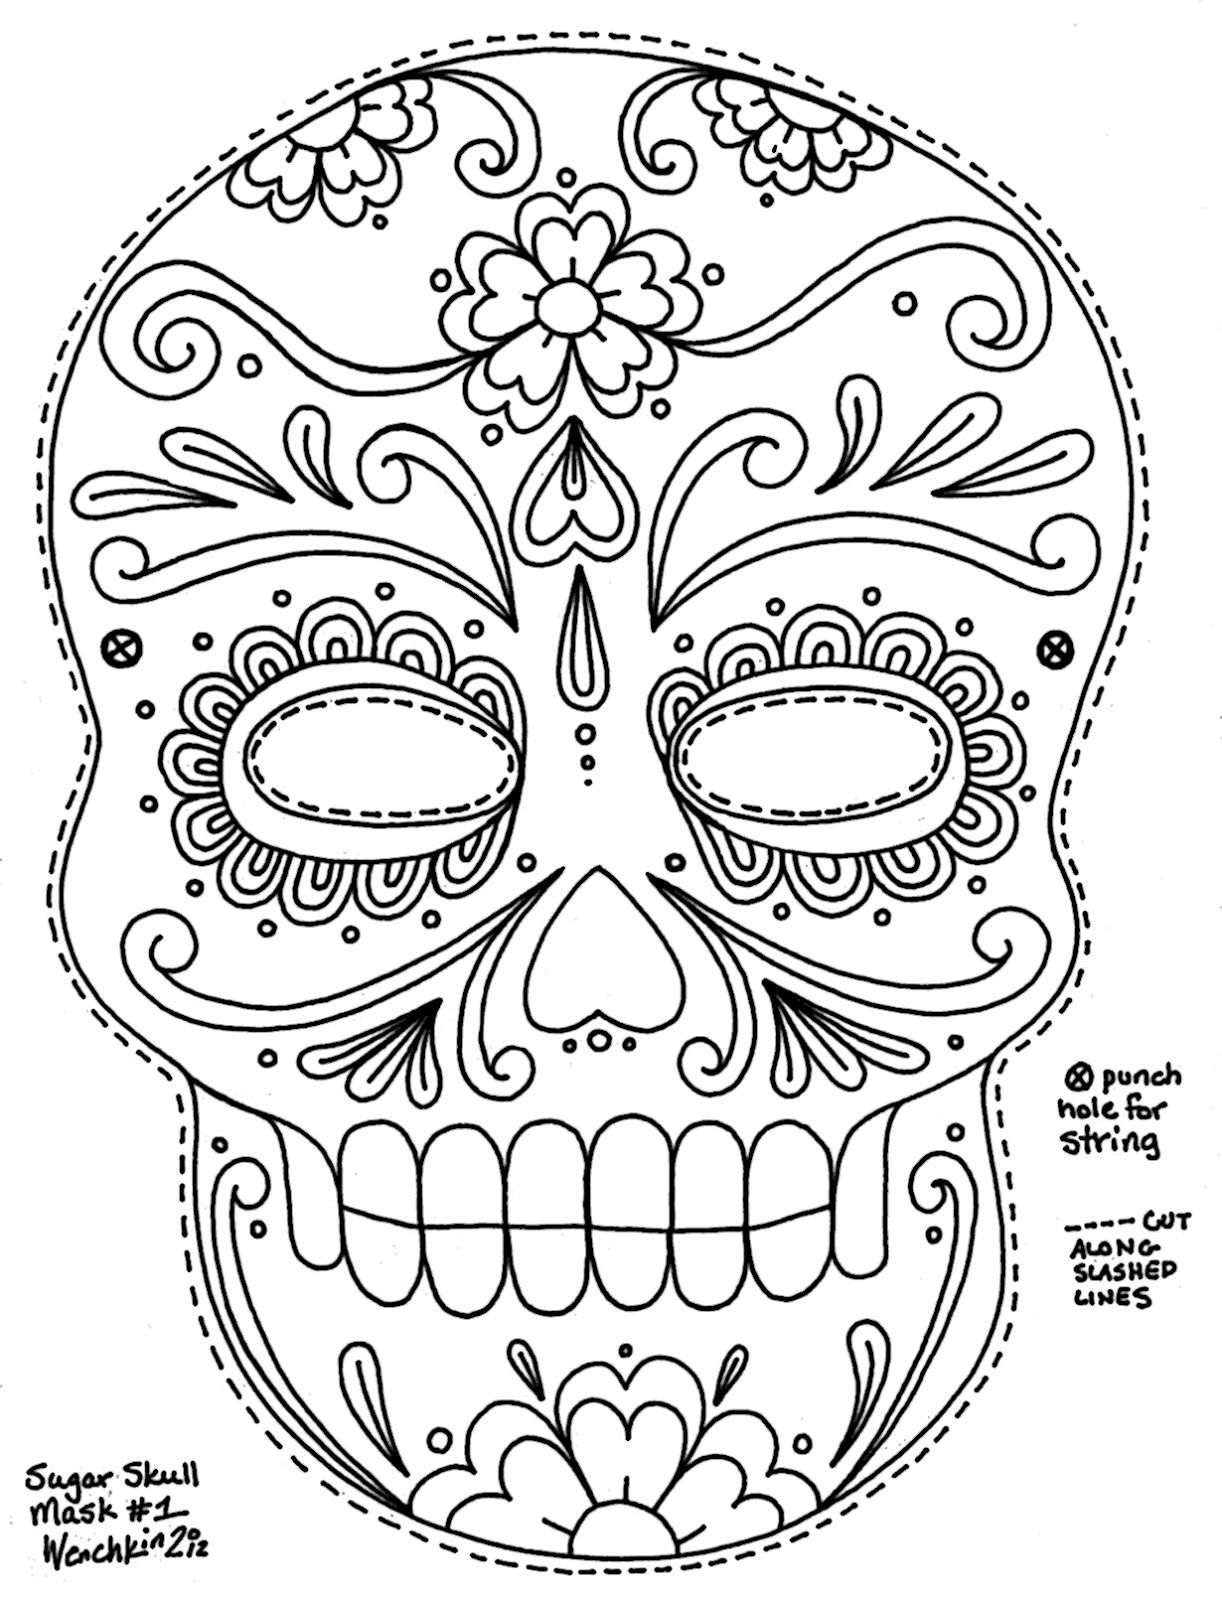 skeleton head coloring pages Collection-sugar skull coloring pages 17-d